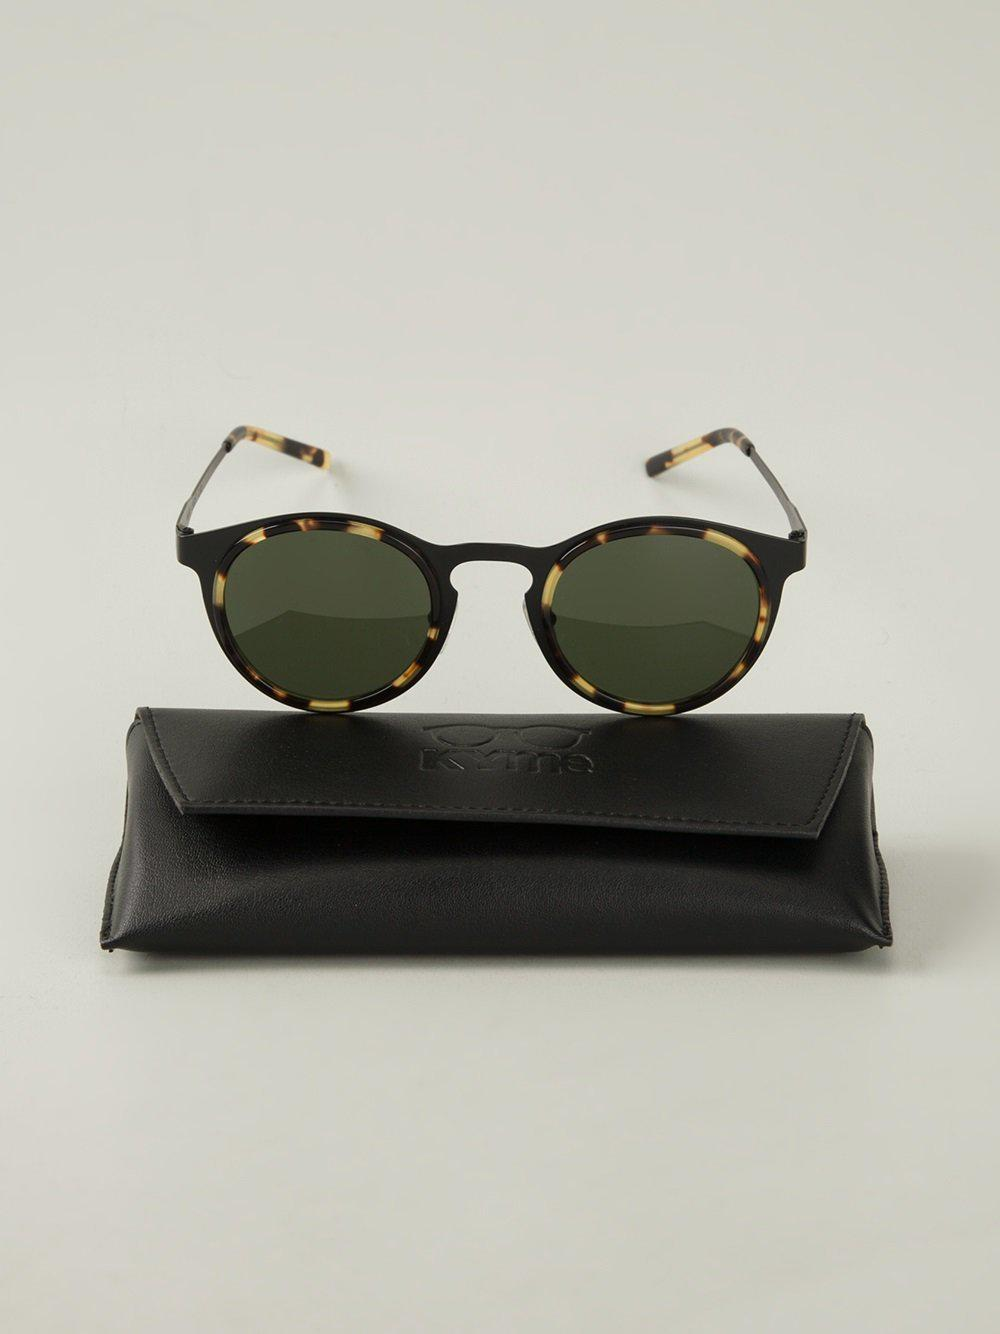 Kyme Miki Sunglasses in Black